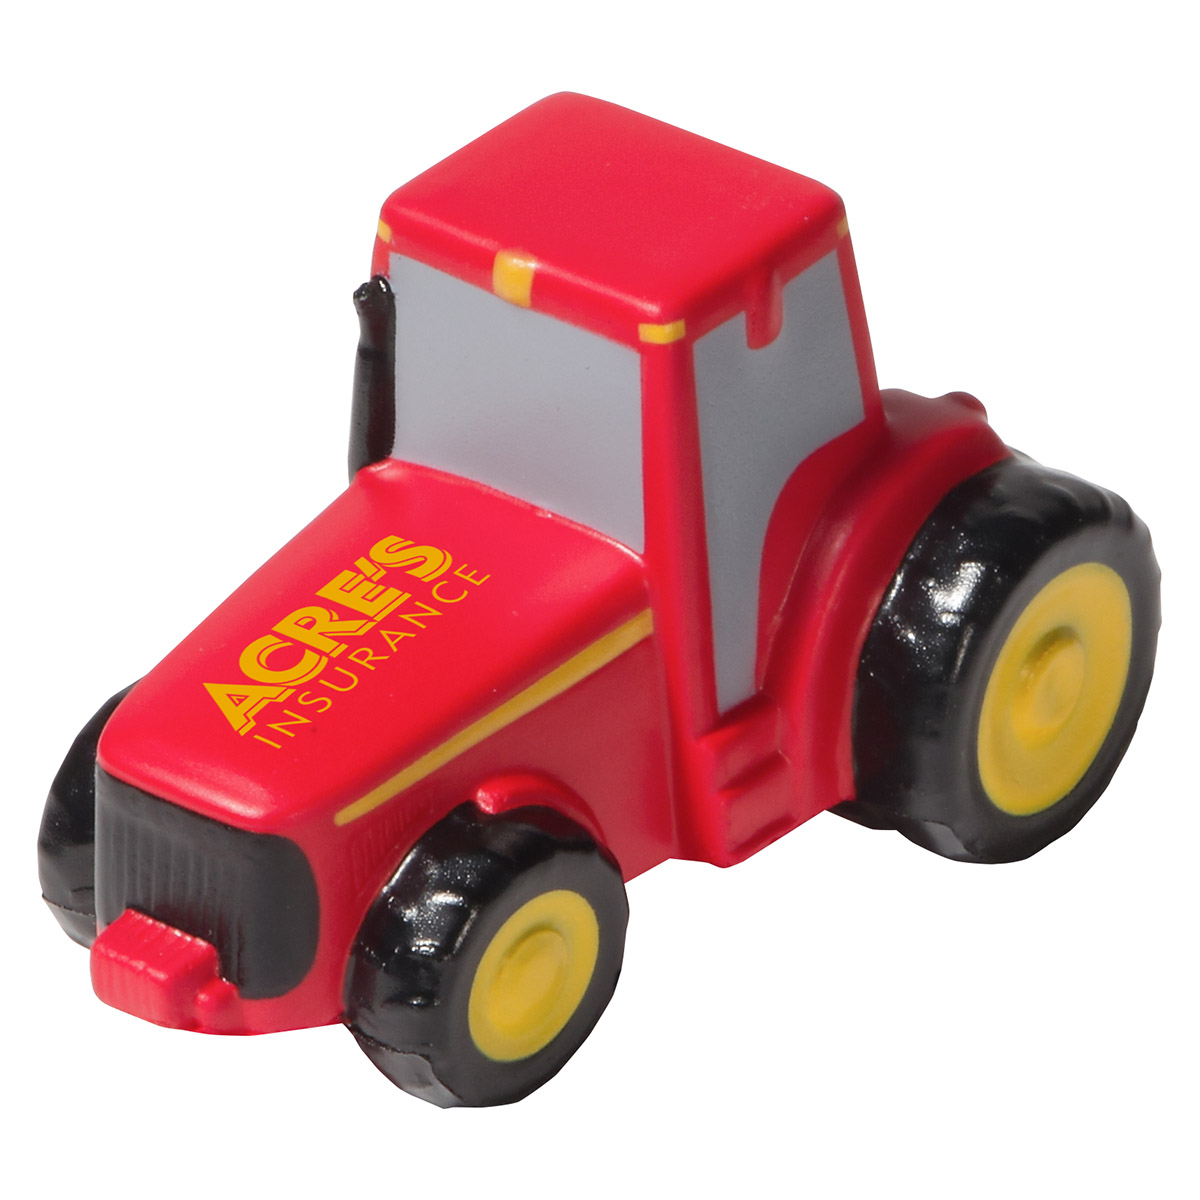 Tractor Stress Reliever, LAF-TR10, 1 Colour Imprint